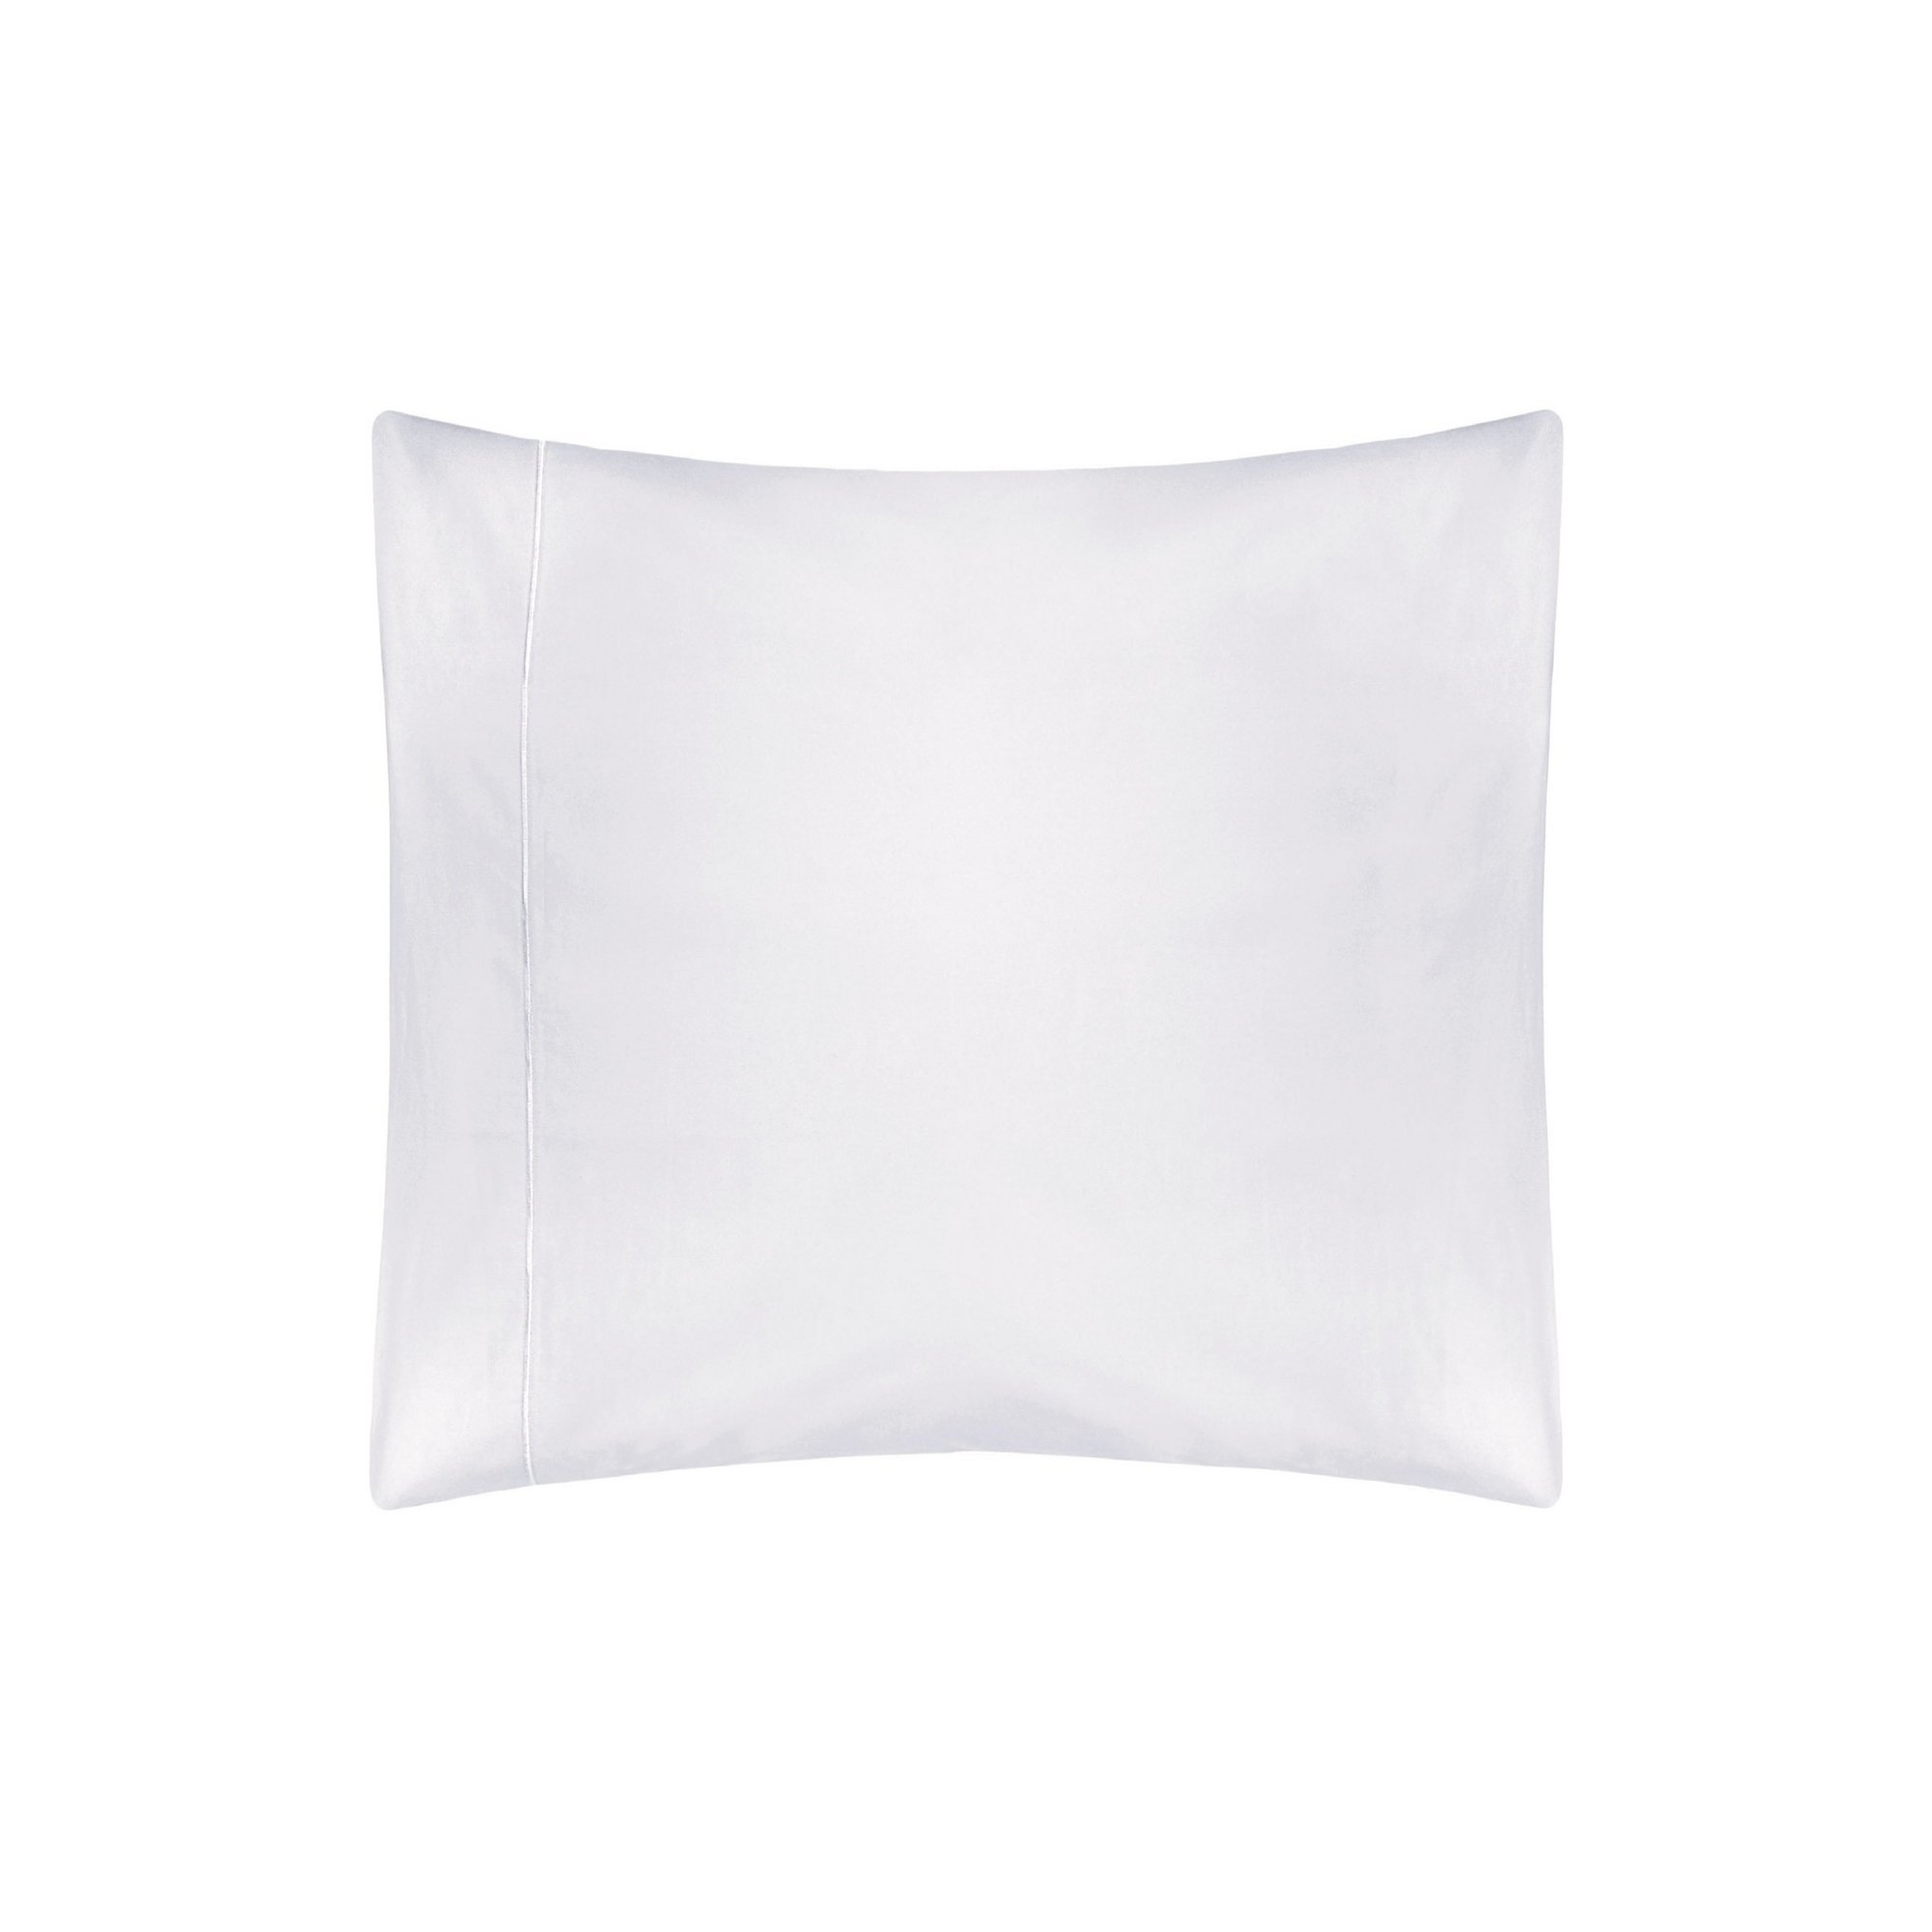 Image of Belledorm 400 Count Egyptian Cotton Continental Pillowcase